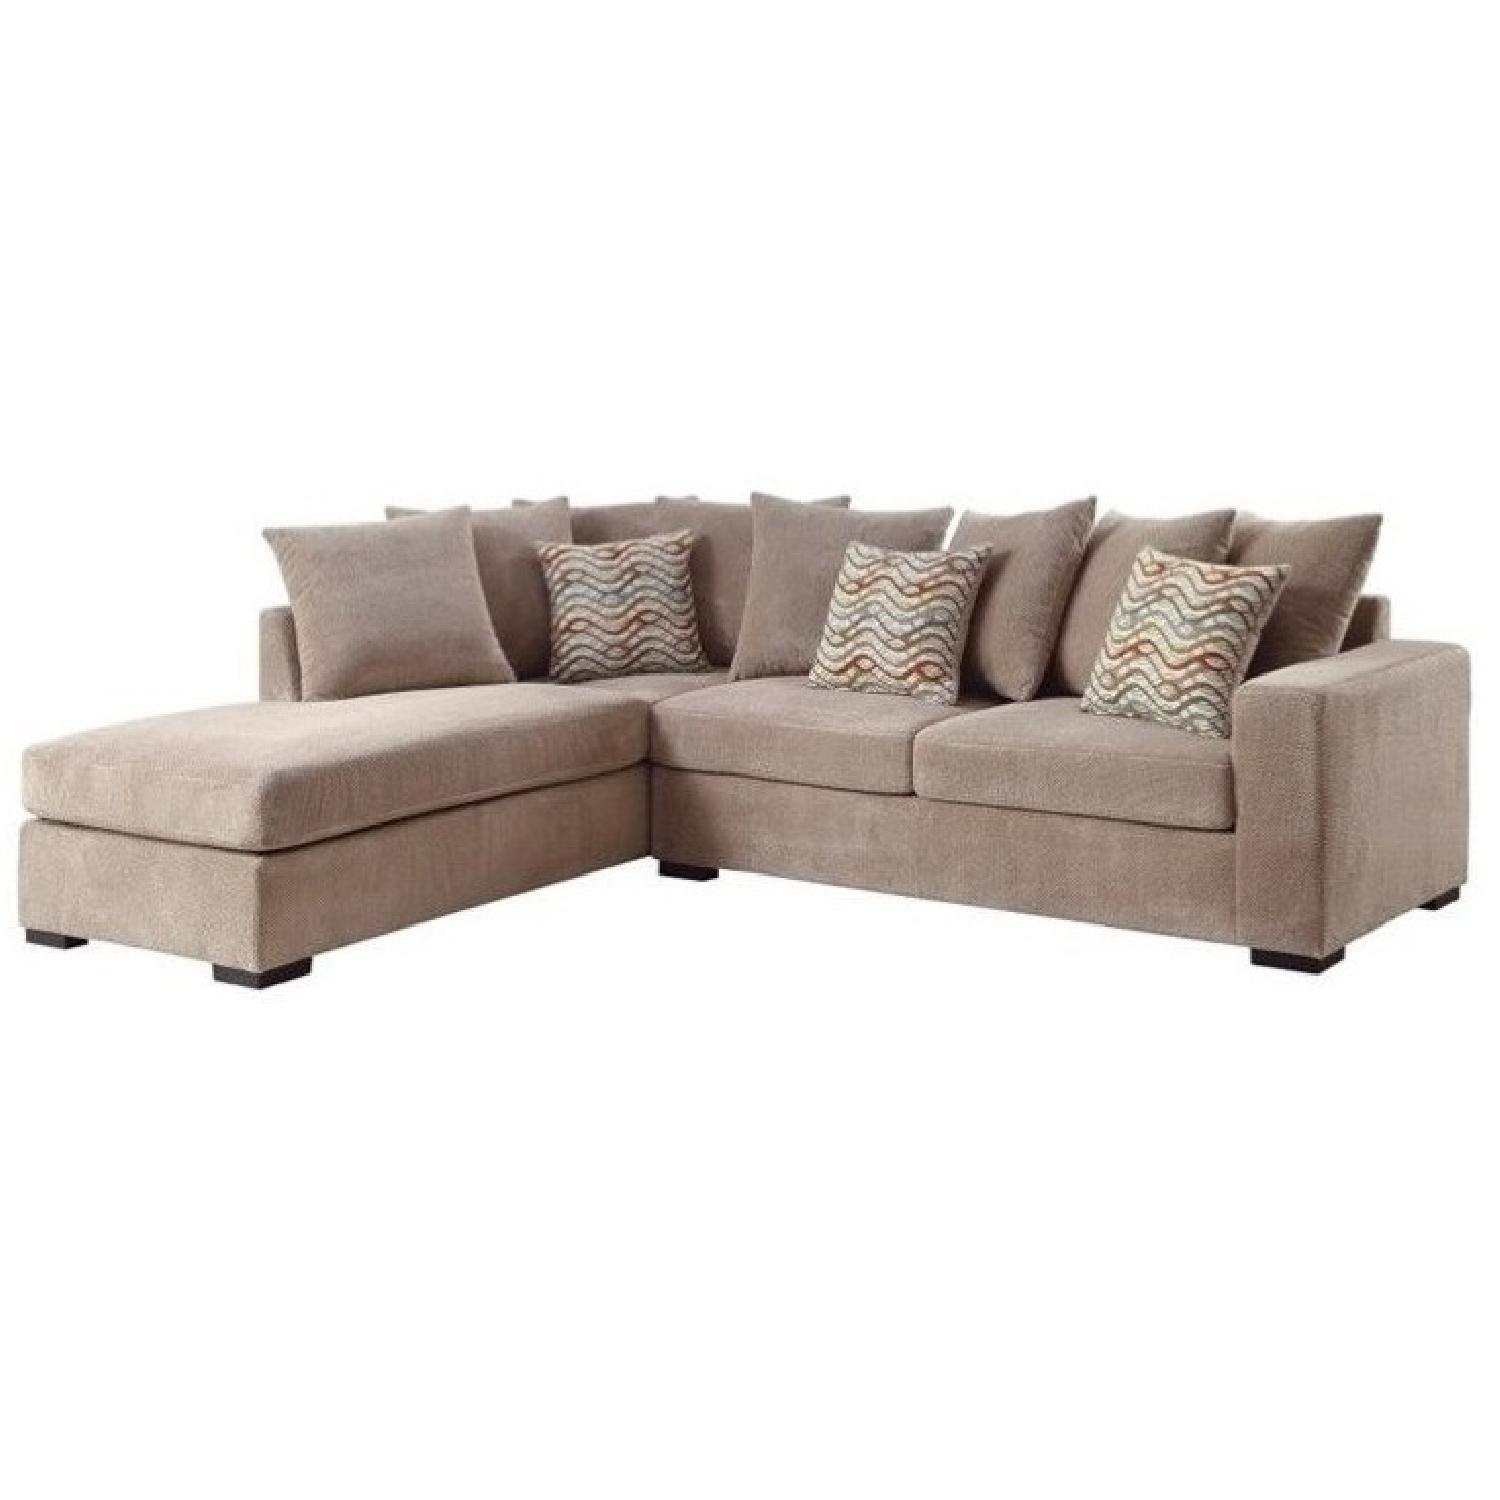 Reversible Chaise Sectional w/ Pocket Coil Seating & Taupe Fabric Upholstery